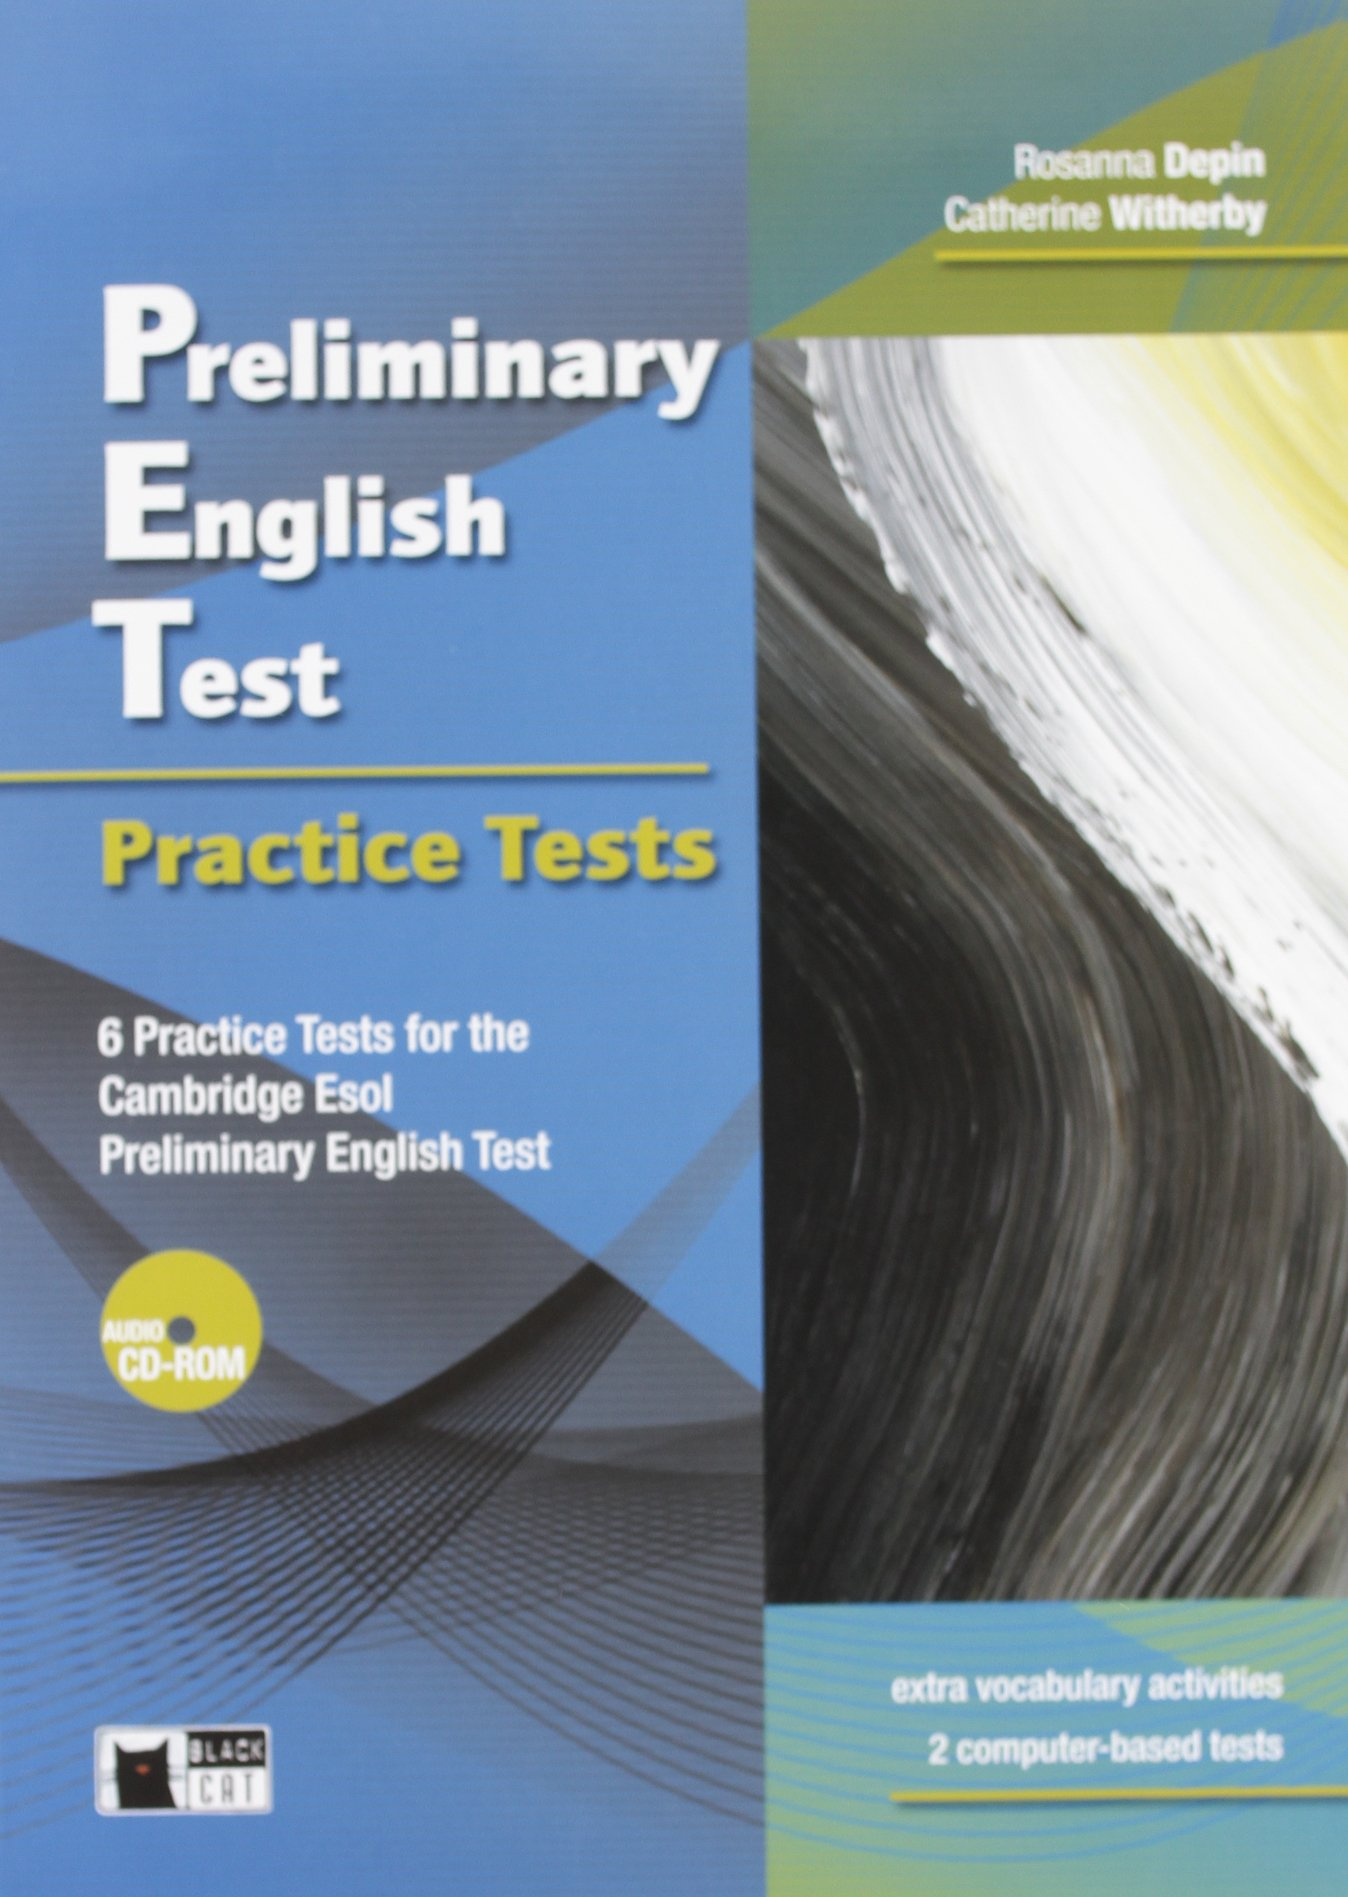 PET Practice Tests (+ CD) the effect of setting reading goals on the vocabulary retention